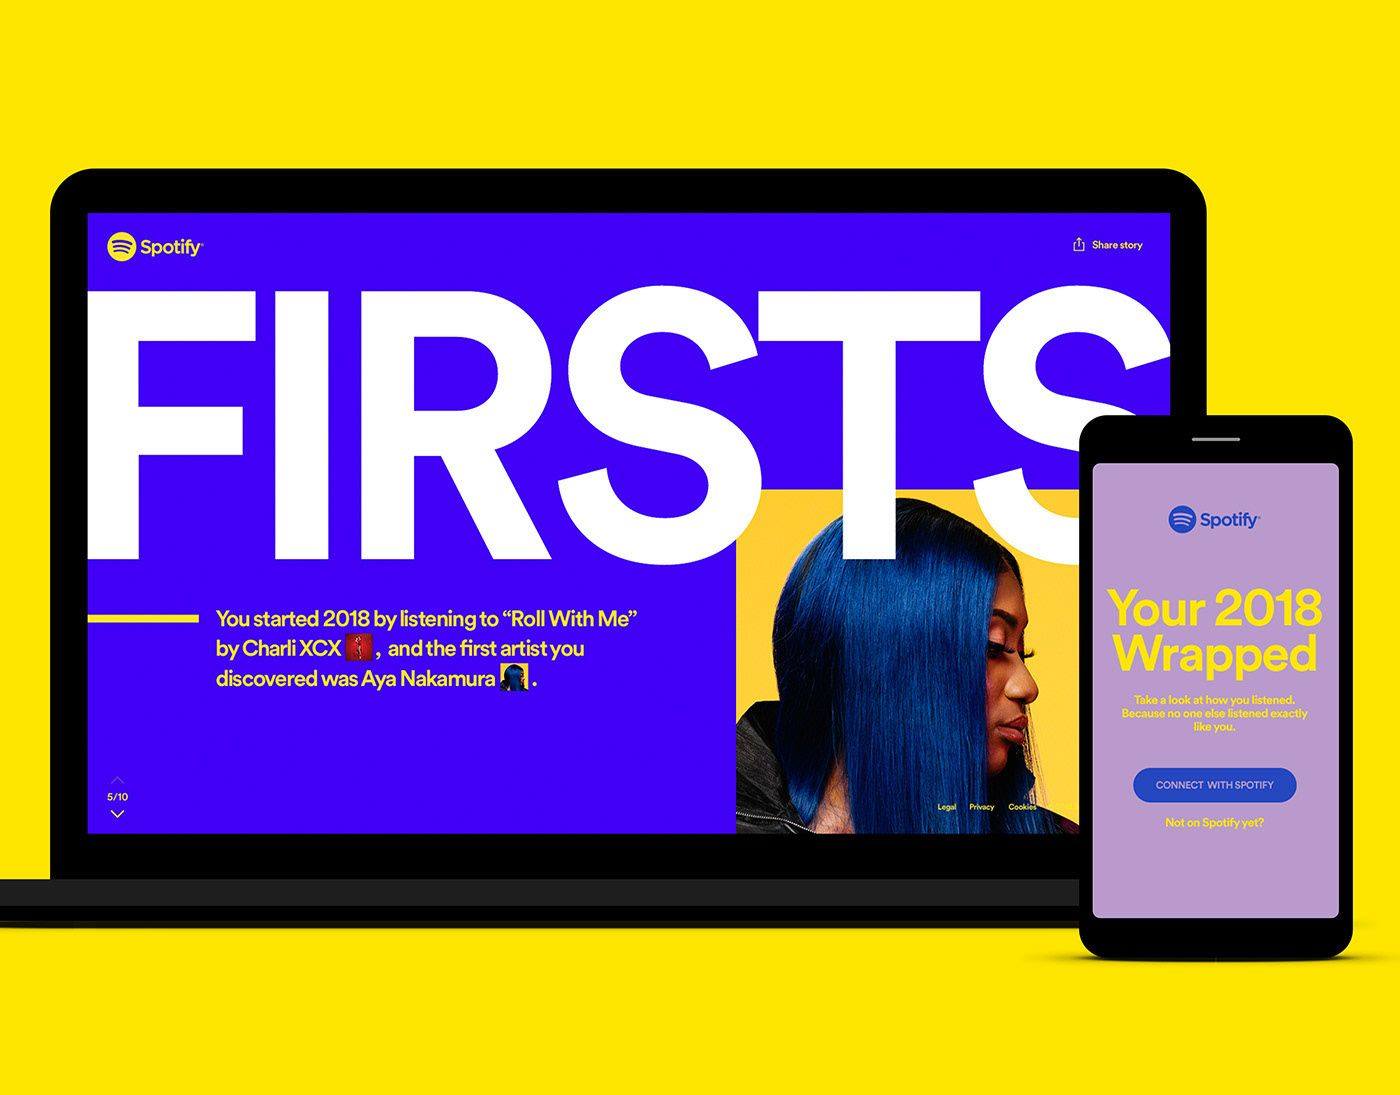 """Check out this Behance project """"Spotify 2018 Wrapped"""